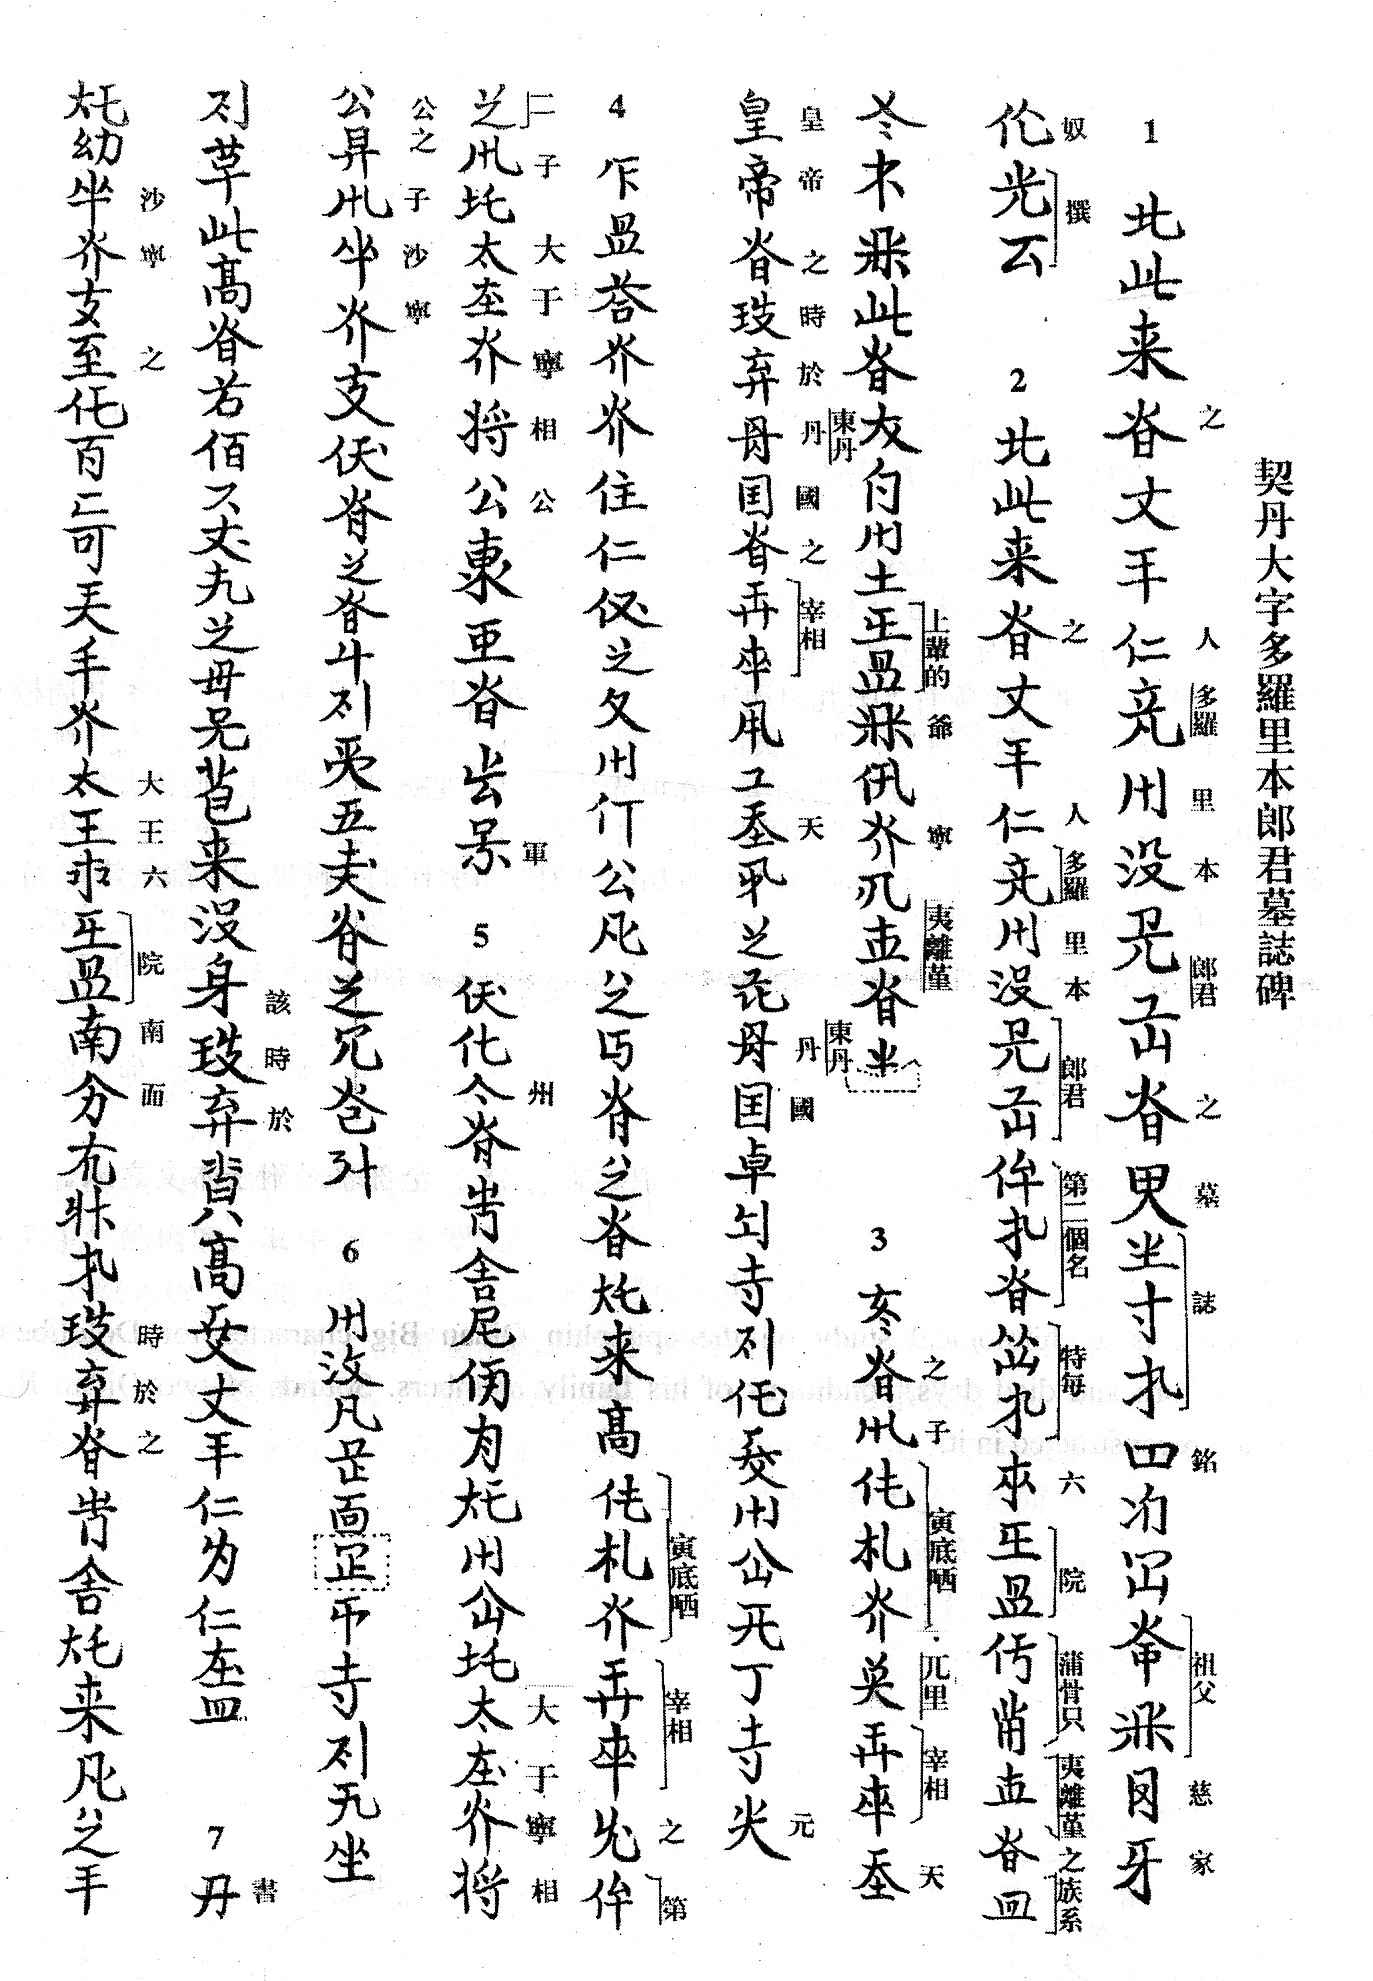 A Dictionary of Chinese Characters